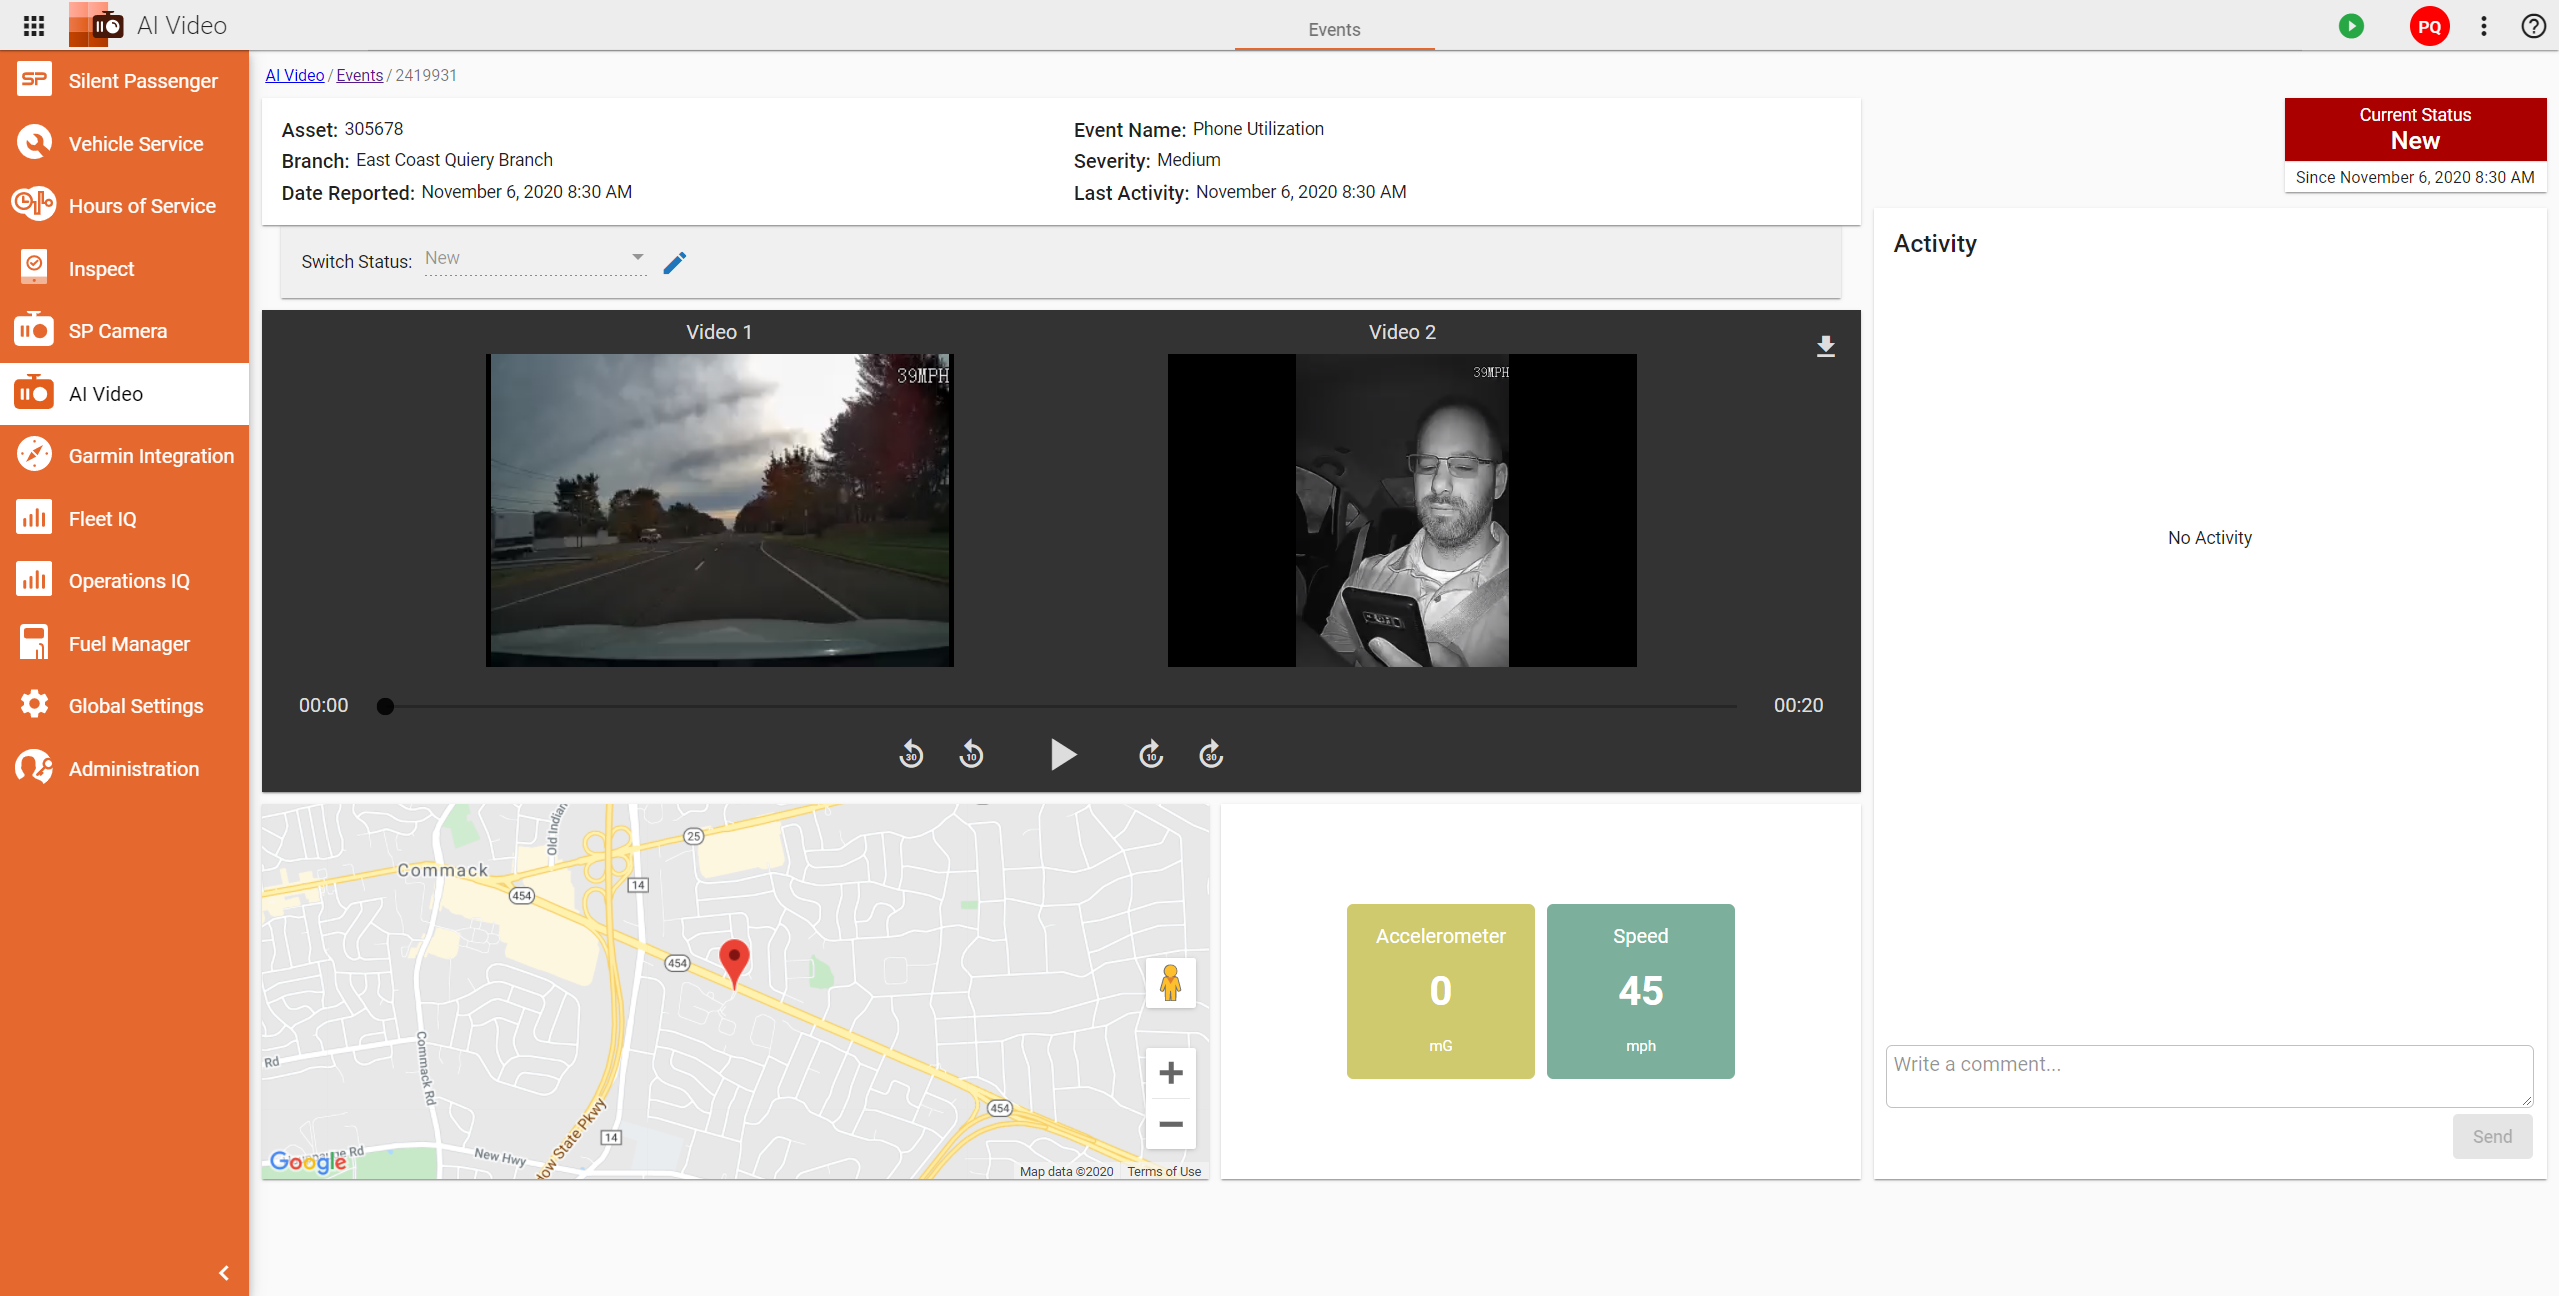 IntelliShift Software - AI Video Dash Cams distracted driver detection %>